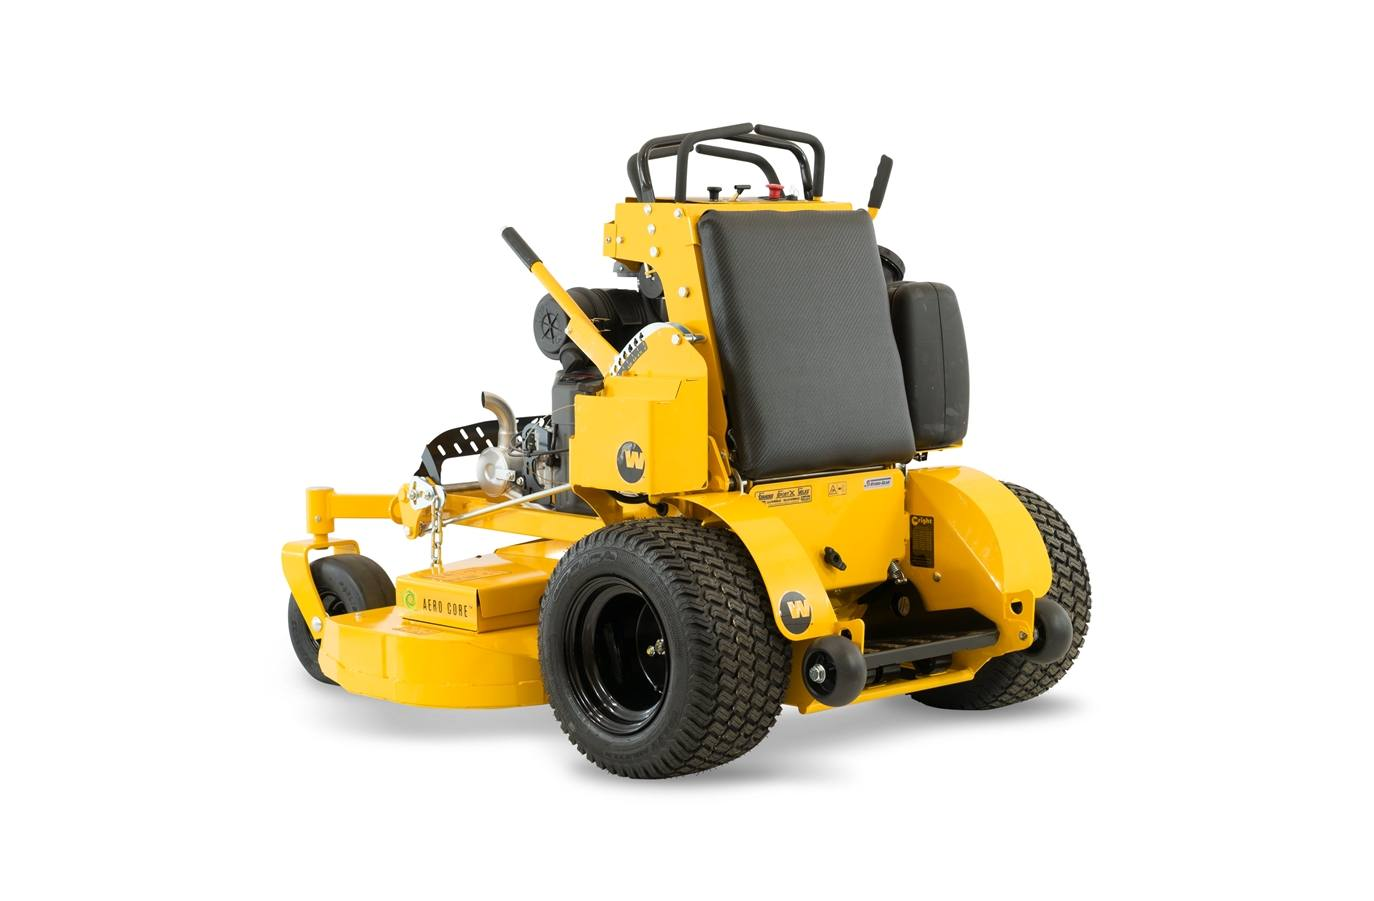 hight resolution of 2018 wright stander intensity 48 fx730 for sale in westborough ma the boston lawnmower company 508 898 3500